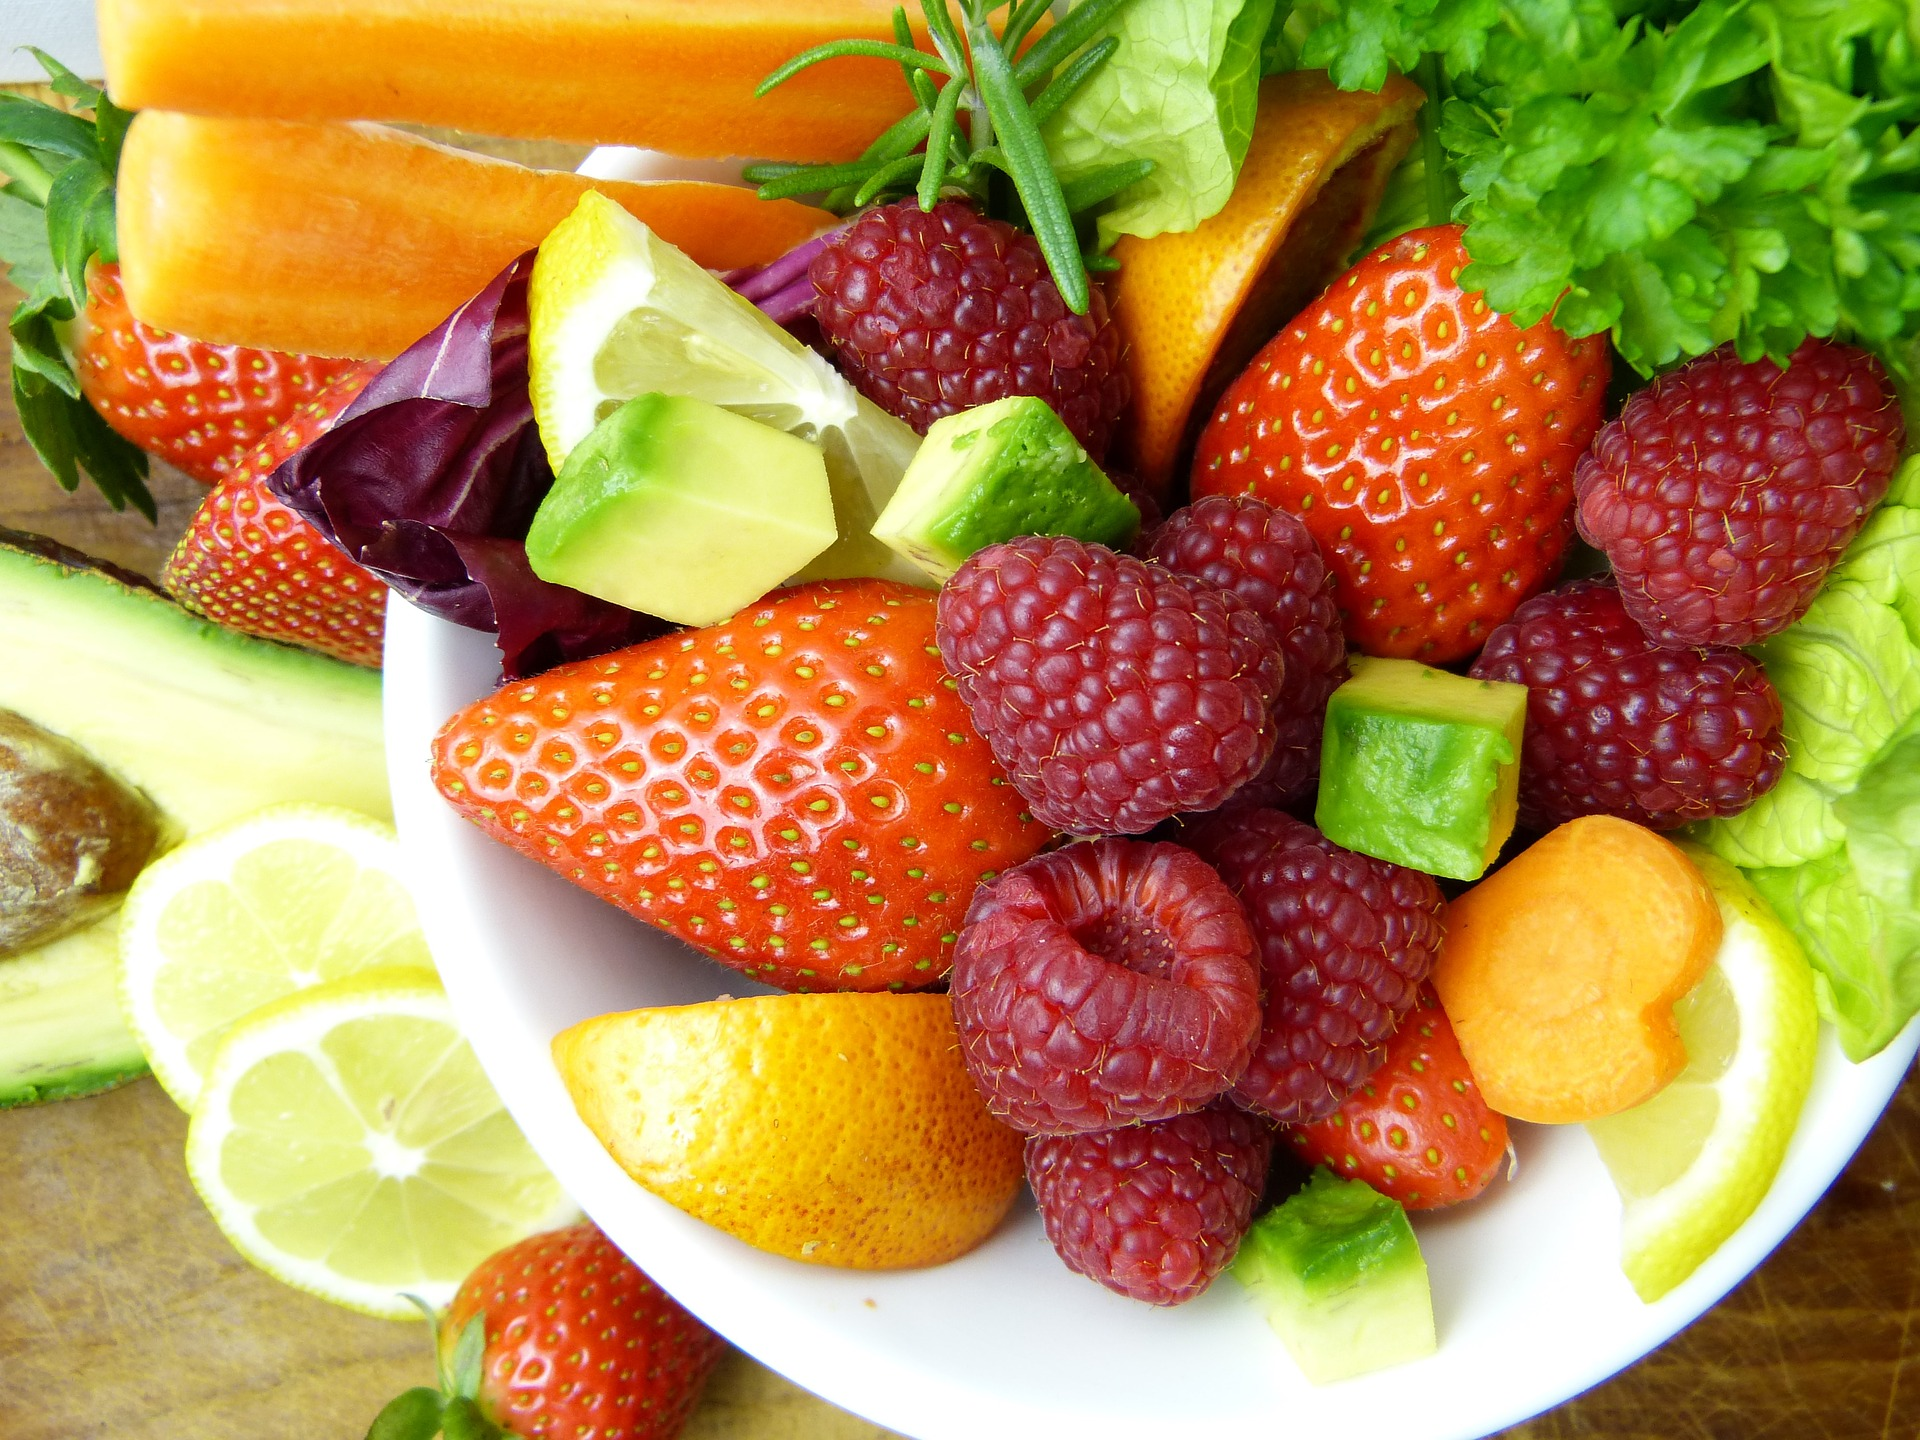 Best Nutrients for Dental Health